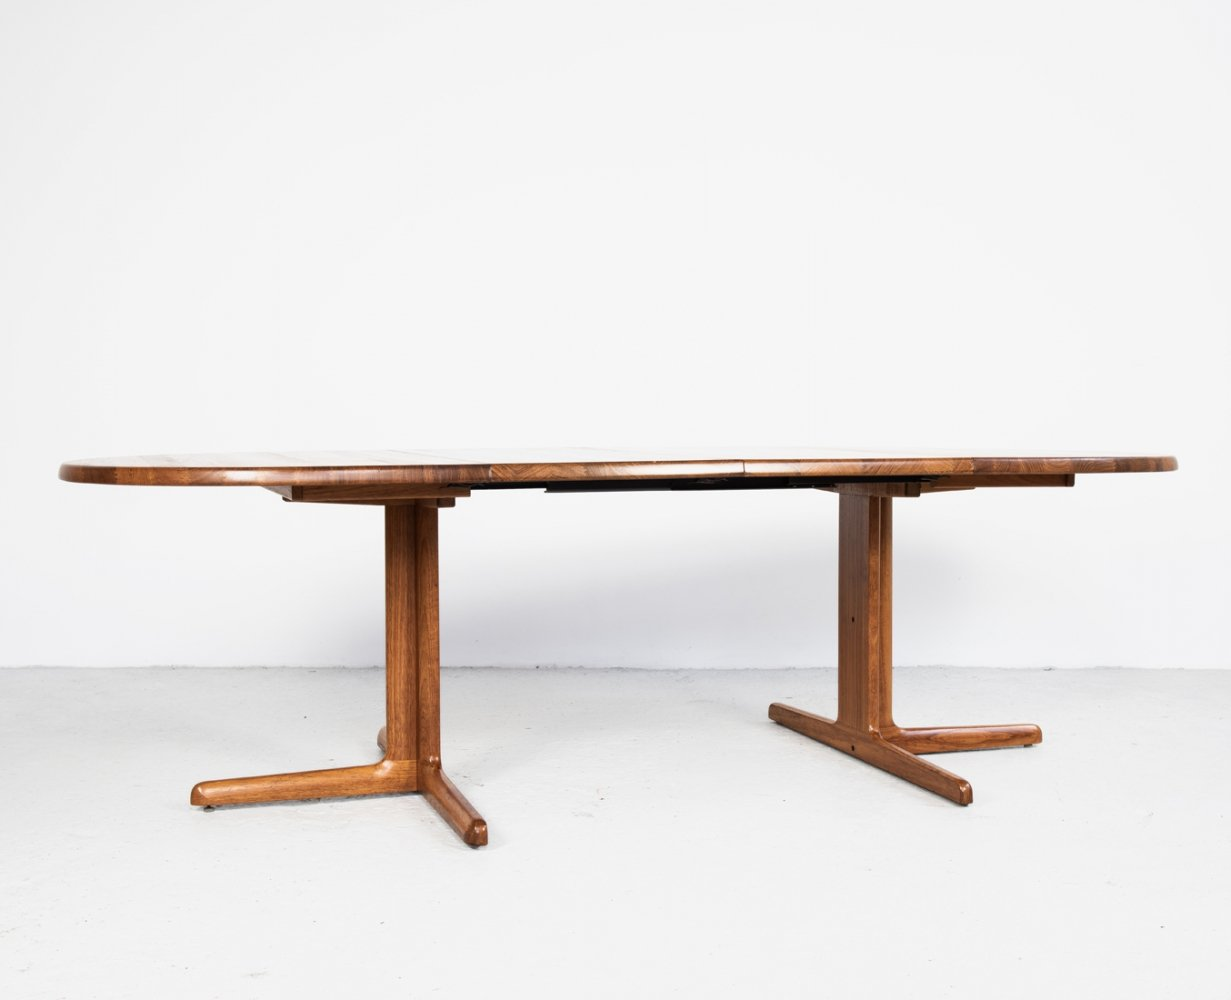 Midcentury Danish large oval dining table in teak, 1960s